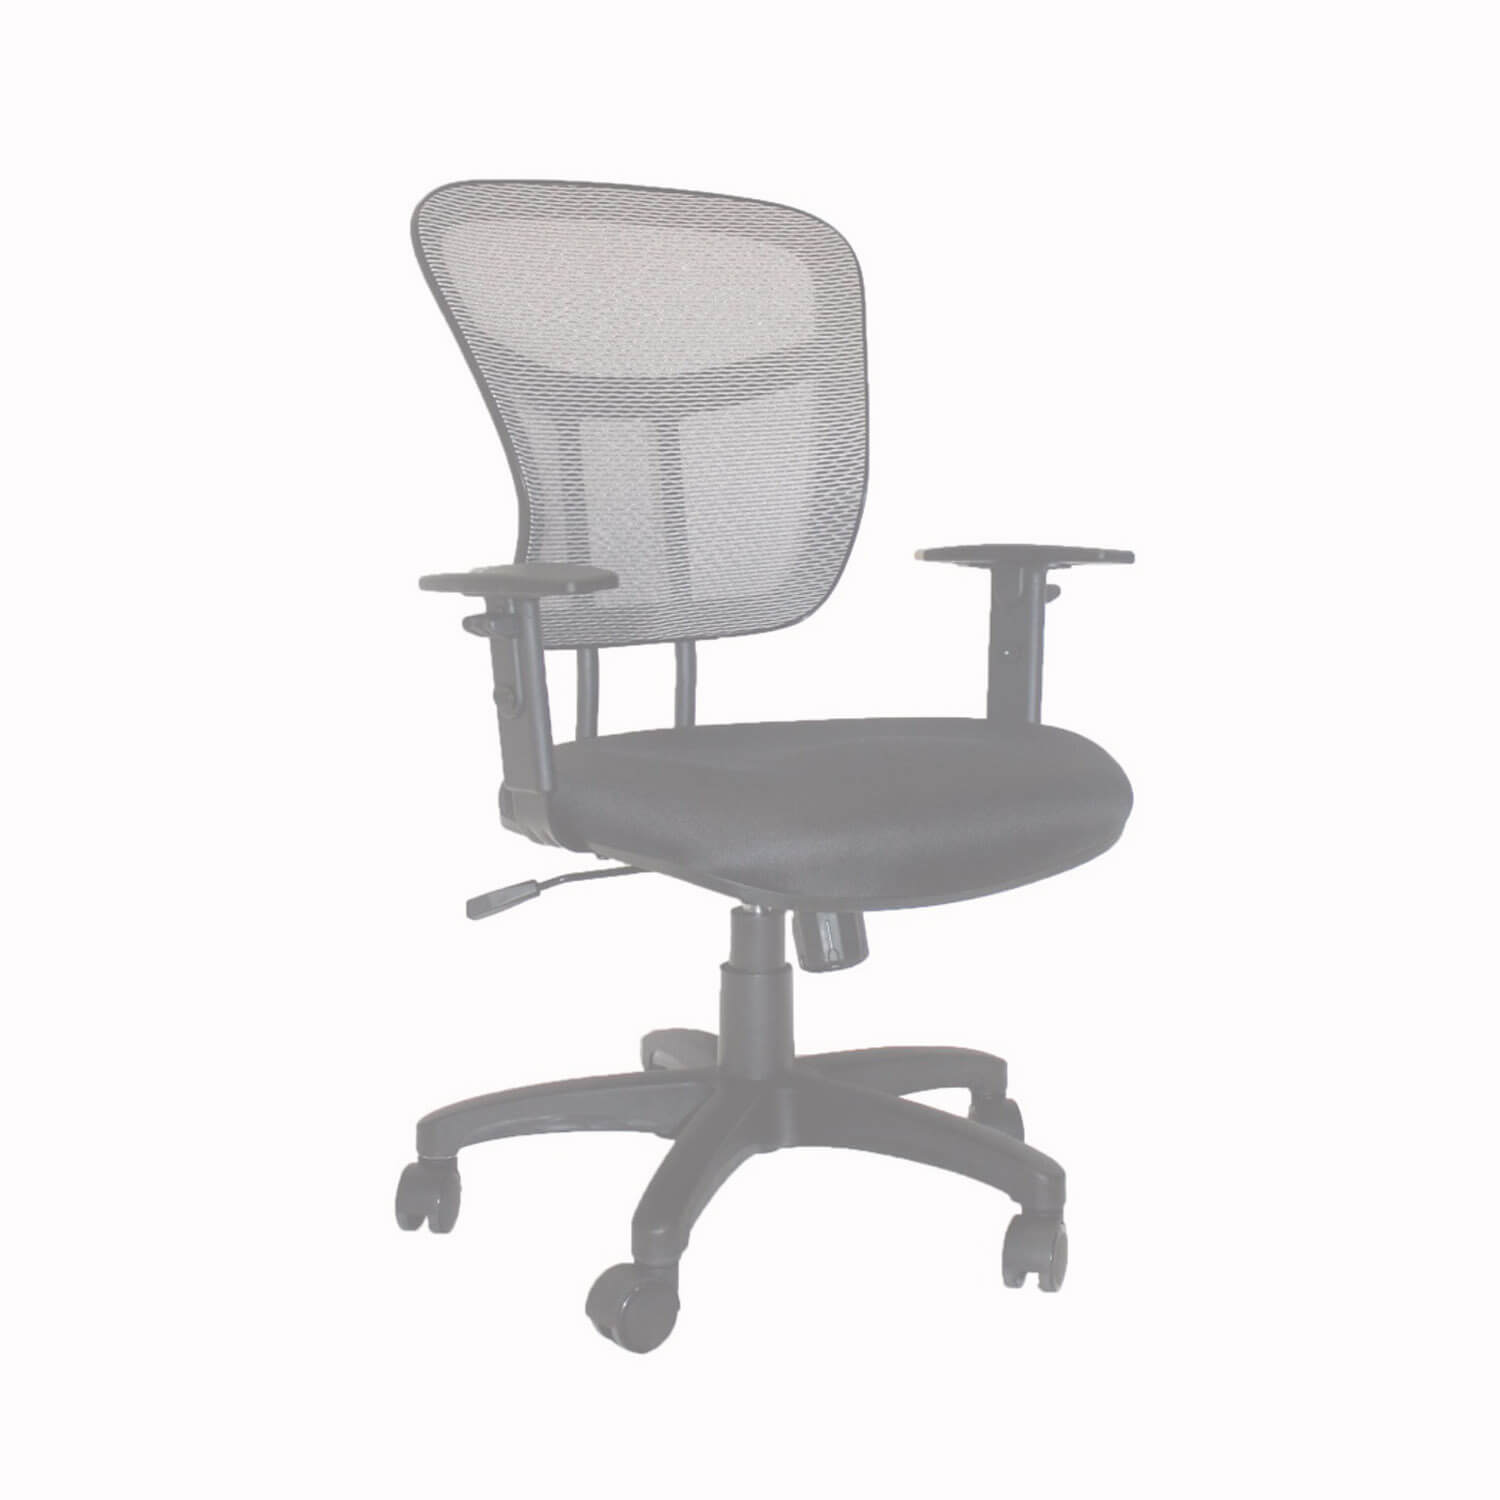 Used Office Furniture For Sale #021516-RBC3